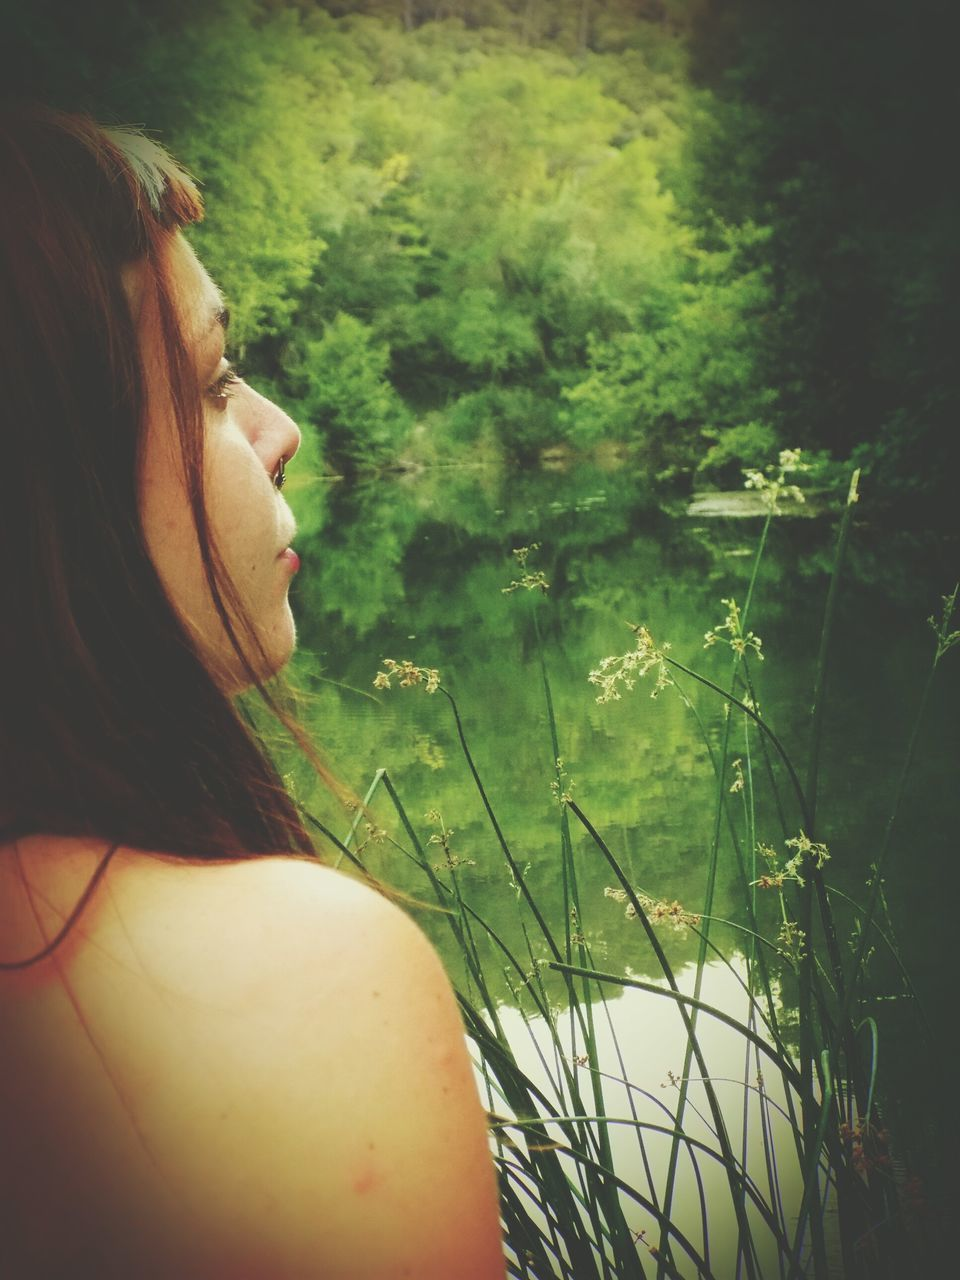 one person, rear view, real people, day, plant, young adult, young women, women, outdoors, nature, beautiful woman, grass, people